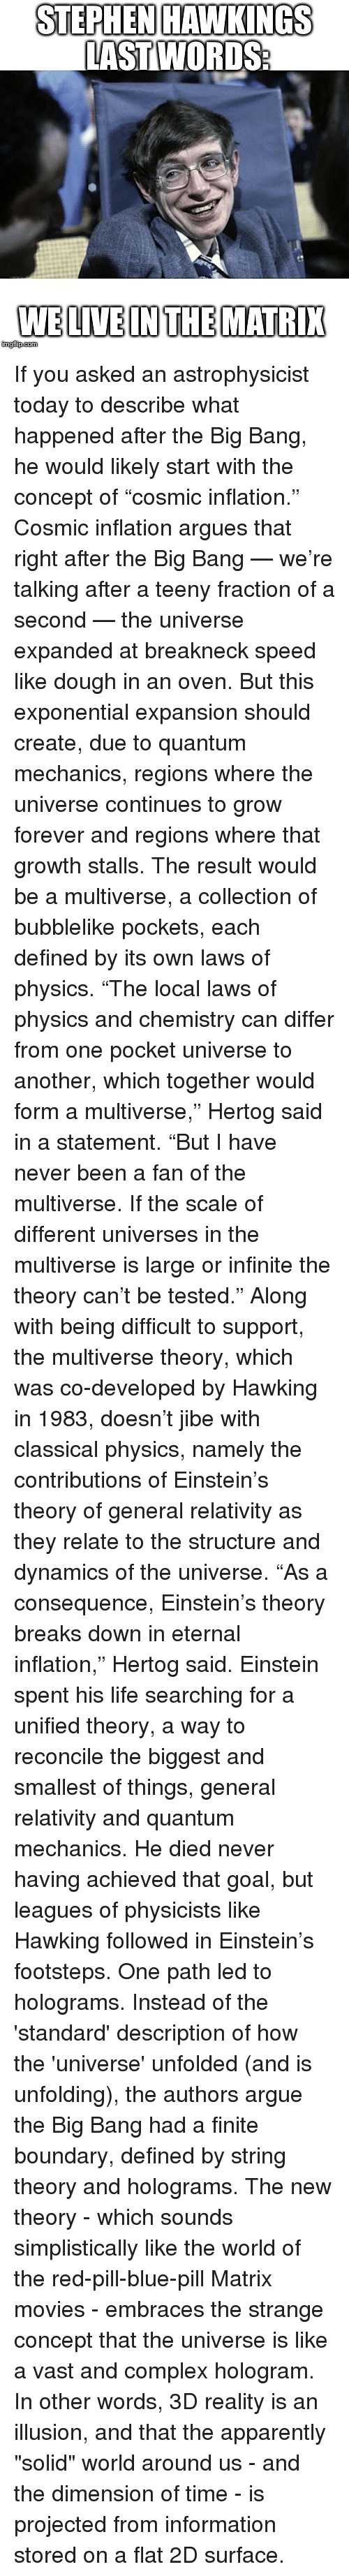 "Apparently, Arguing, and Complex: STEPHEN HAWKINGS  LAST WORDS  WELIVEINTHEMATRI If you asked an astrophysicist today to describe what happened after the Big Bang, he would likely start with the concept of ""cosmic inflation."" Cosmic inflation argues that right after the Big Bang — we're talking after a teeny fraction of a second — the universe expanded at breakneck speed like dough in an oven. But this exponential expansion should create, due to quantum mechanics, regions where the universe continues to grow forever and regions where that growth stalls. The result would be a multiverse, a collection of bubblelike pockets, each defined by its own laws of physics. ""The local laws of physics and chemistry can differ from one pocket universe to another, which together would form a multiverse,"" Hertog said in a statement. ""But I have never been a fan of the multiverse. If the scale of different universes in the multiverse is large or infinite the theory can't be tested."" Along with being difficult to support, the multiverse theory, which was co-developed by Hawking in 1983, doesn't jibe with classical physics, namely the contributions of Einstein's theory of general relativity as they relate to the structure and dynamics of the universe. ""As a consequence, Einstein's theory breaks down in eternal inflation,"" Hertog said. Einstein spent his life searching for a unified theory, a way to reconcile the biggest and smallest of things, general relativity and quantum mechanics. He died never having achieved that goal, but leagues of physicists like Hawking followed in Einstein's footsteps. One path led to holograms. Instead of the 'standard' description of how the 'universe' unfolded (and is unfolding), the authors argue the Big Bang had a finite boundary, defined by string theory and holograms. The new theory - which sounds simplistically like the world of the red-pill-blue-pill Matrix movies - embraces the strange concept that the universe is like a vast and complex hologram. In other words, 3D reality is an illusion, and that the apparently ""solid"" world around us - and the dimension of time - is projected from information stored on a flat 2D surface."